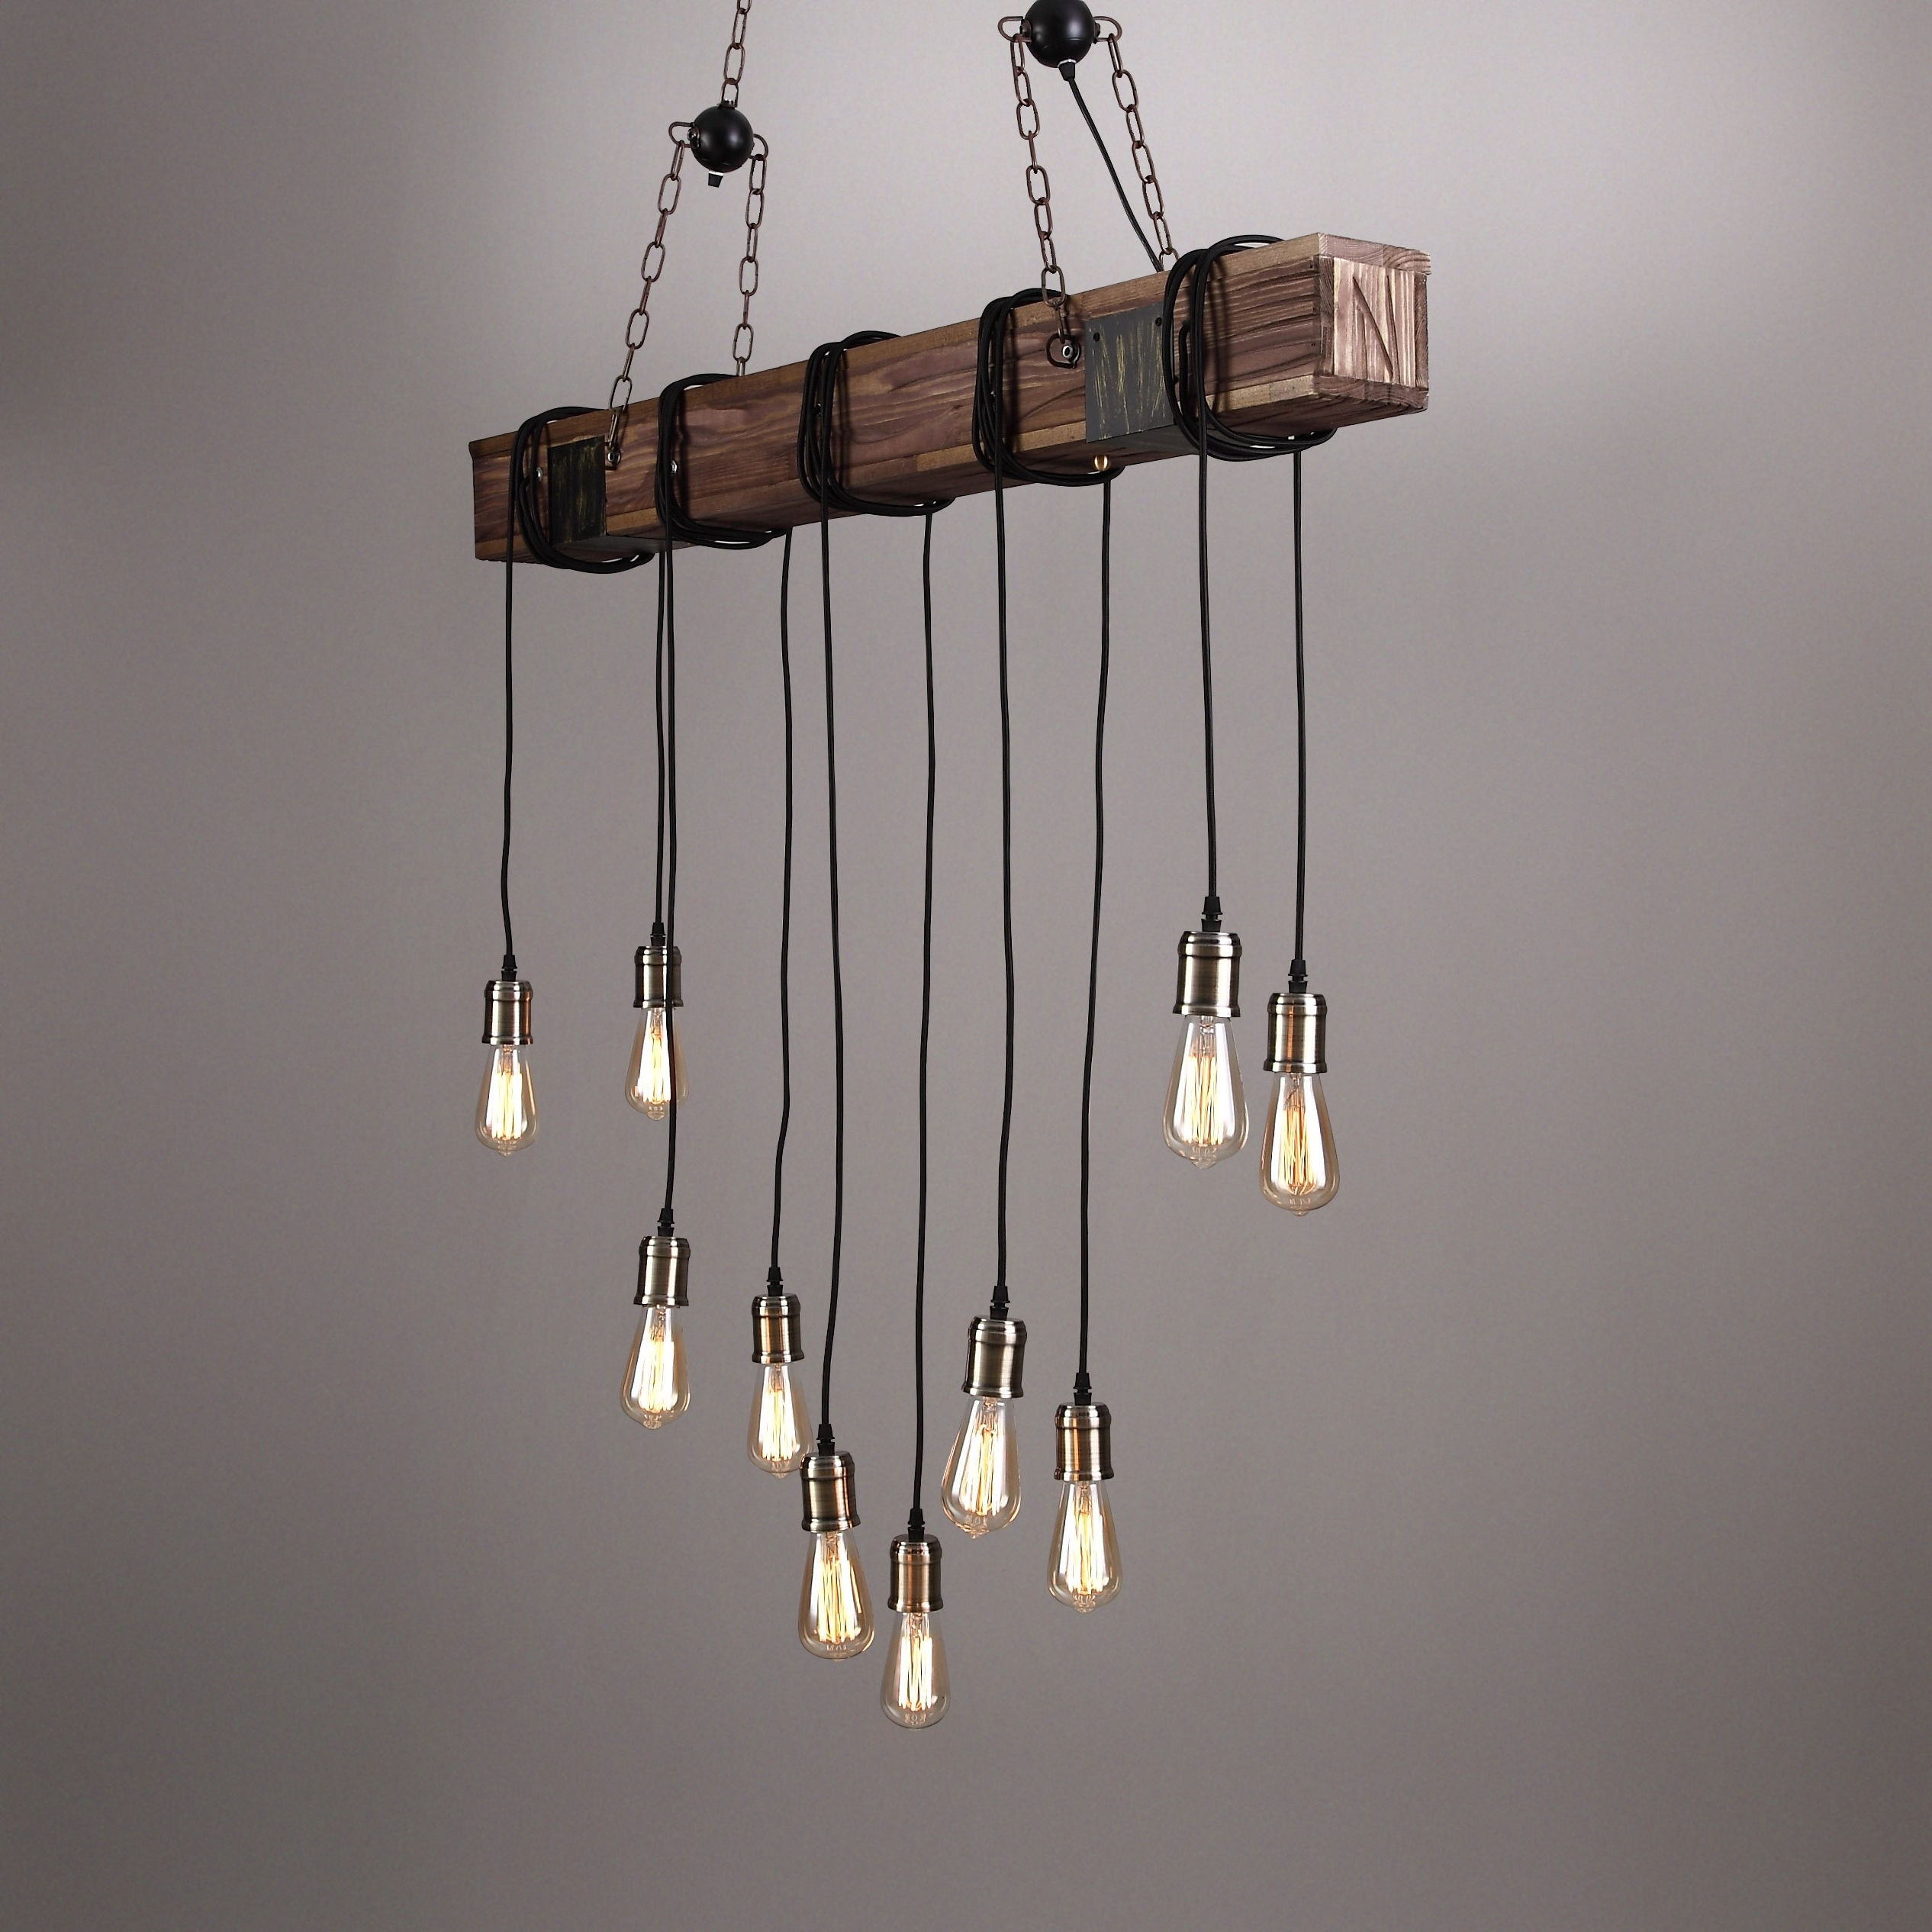 Latest Vintage Edison 1 Light Bowl Pendants Within Farmhouse Style Dark Distressed Wood Beam Large Linear Island Pendant Light  10 Edison Bulbs (View 21 of 25)